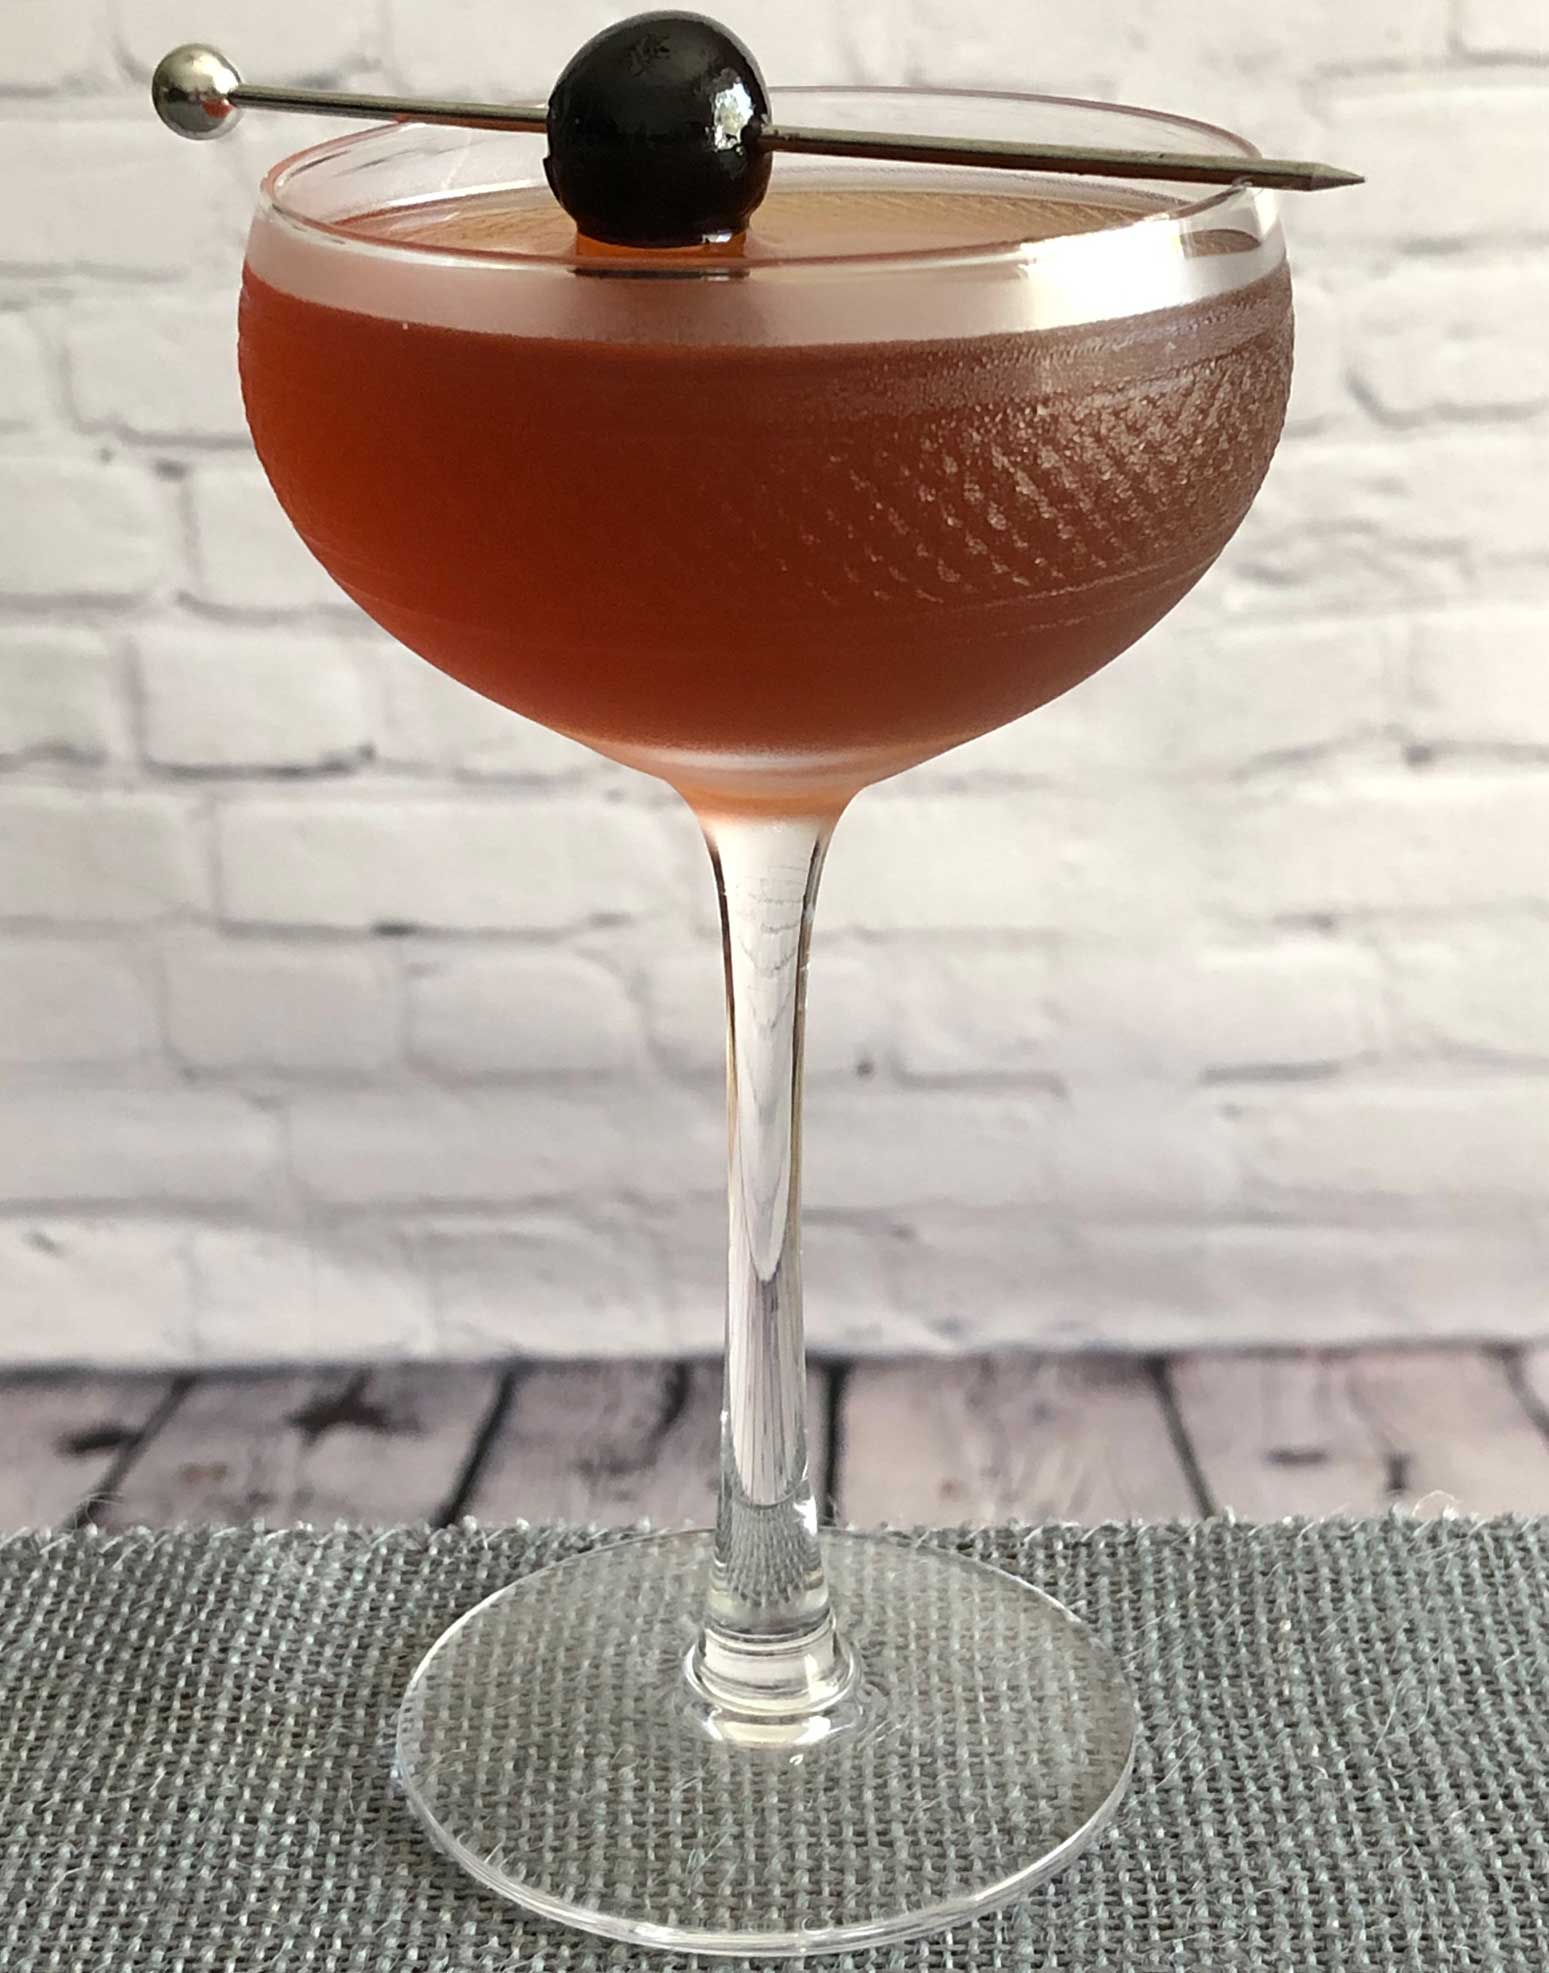 An example of the Remember the Maine, the mixed drink (cocktail) featuring rye whiskey, Cocchi Vermouth di Torino, Rothman & Winter Orchard Cherry Liqueur, and absinthe; photo by Lee Edwards